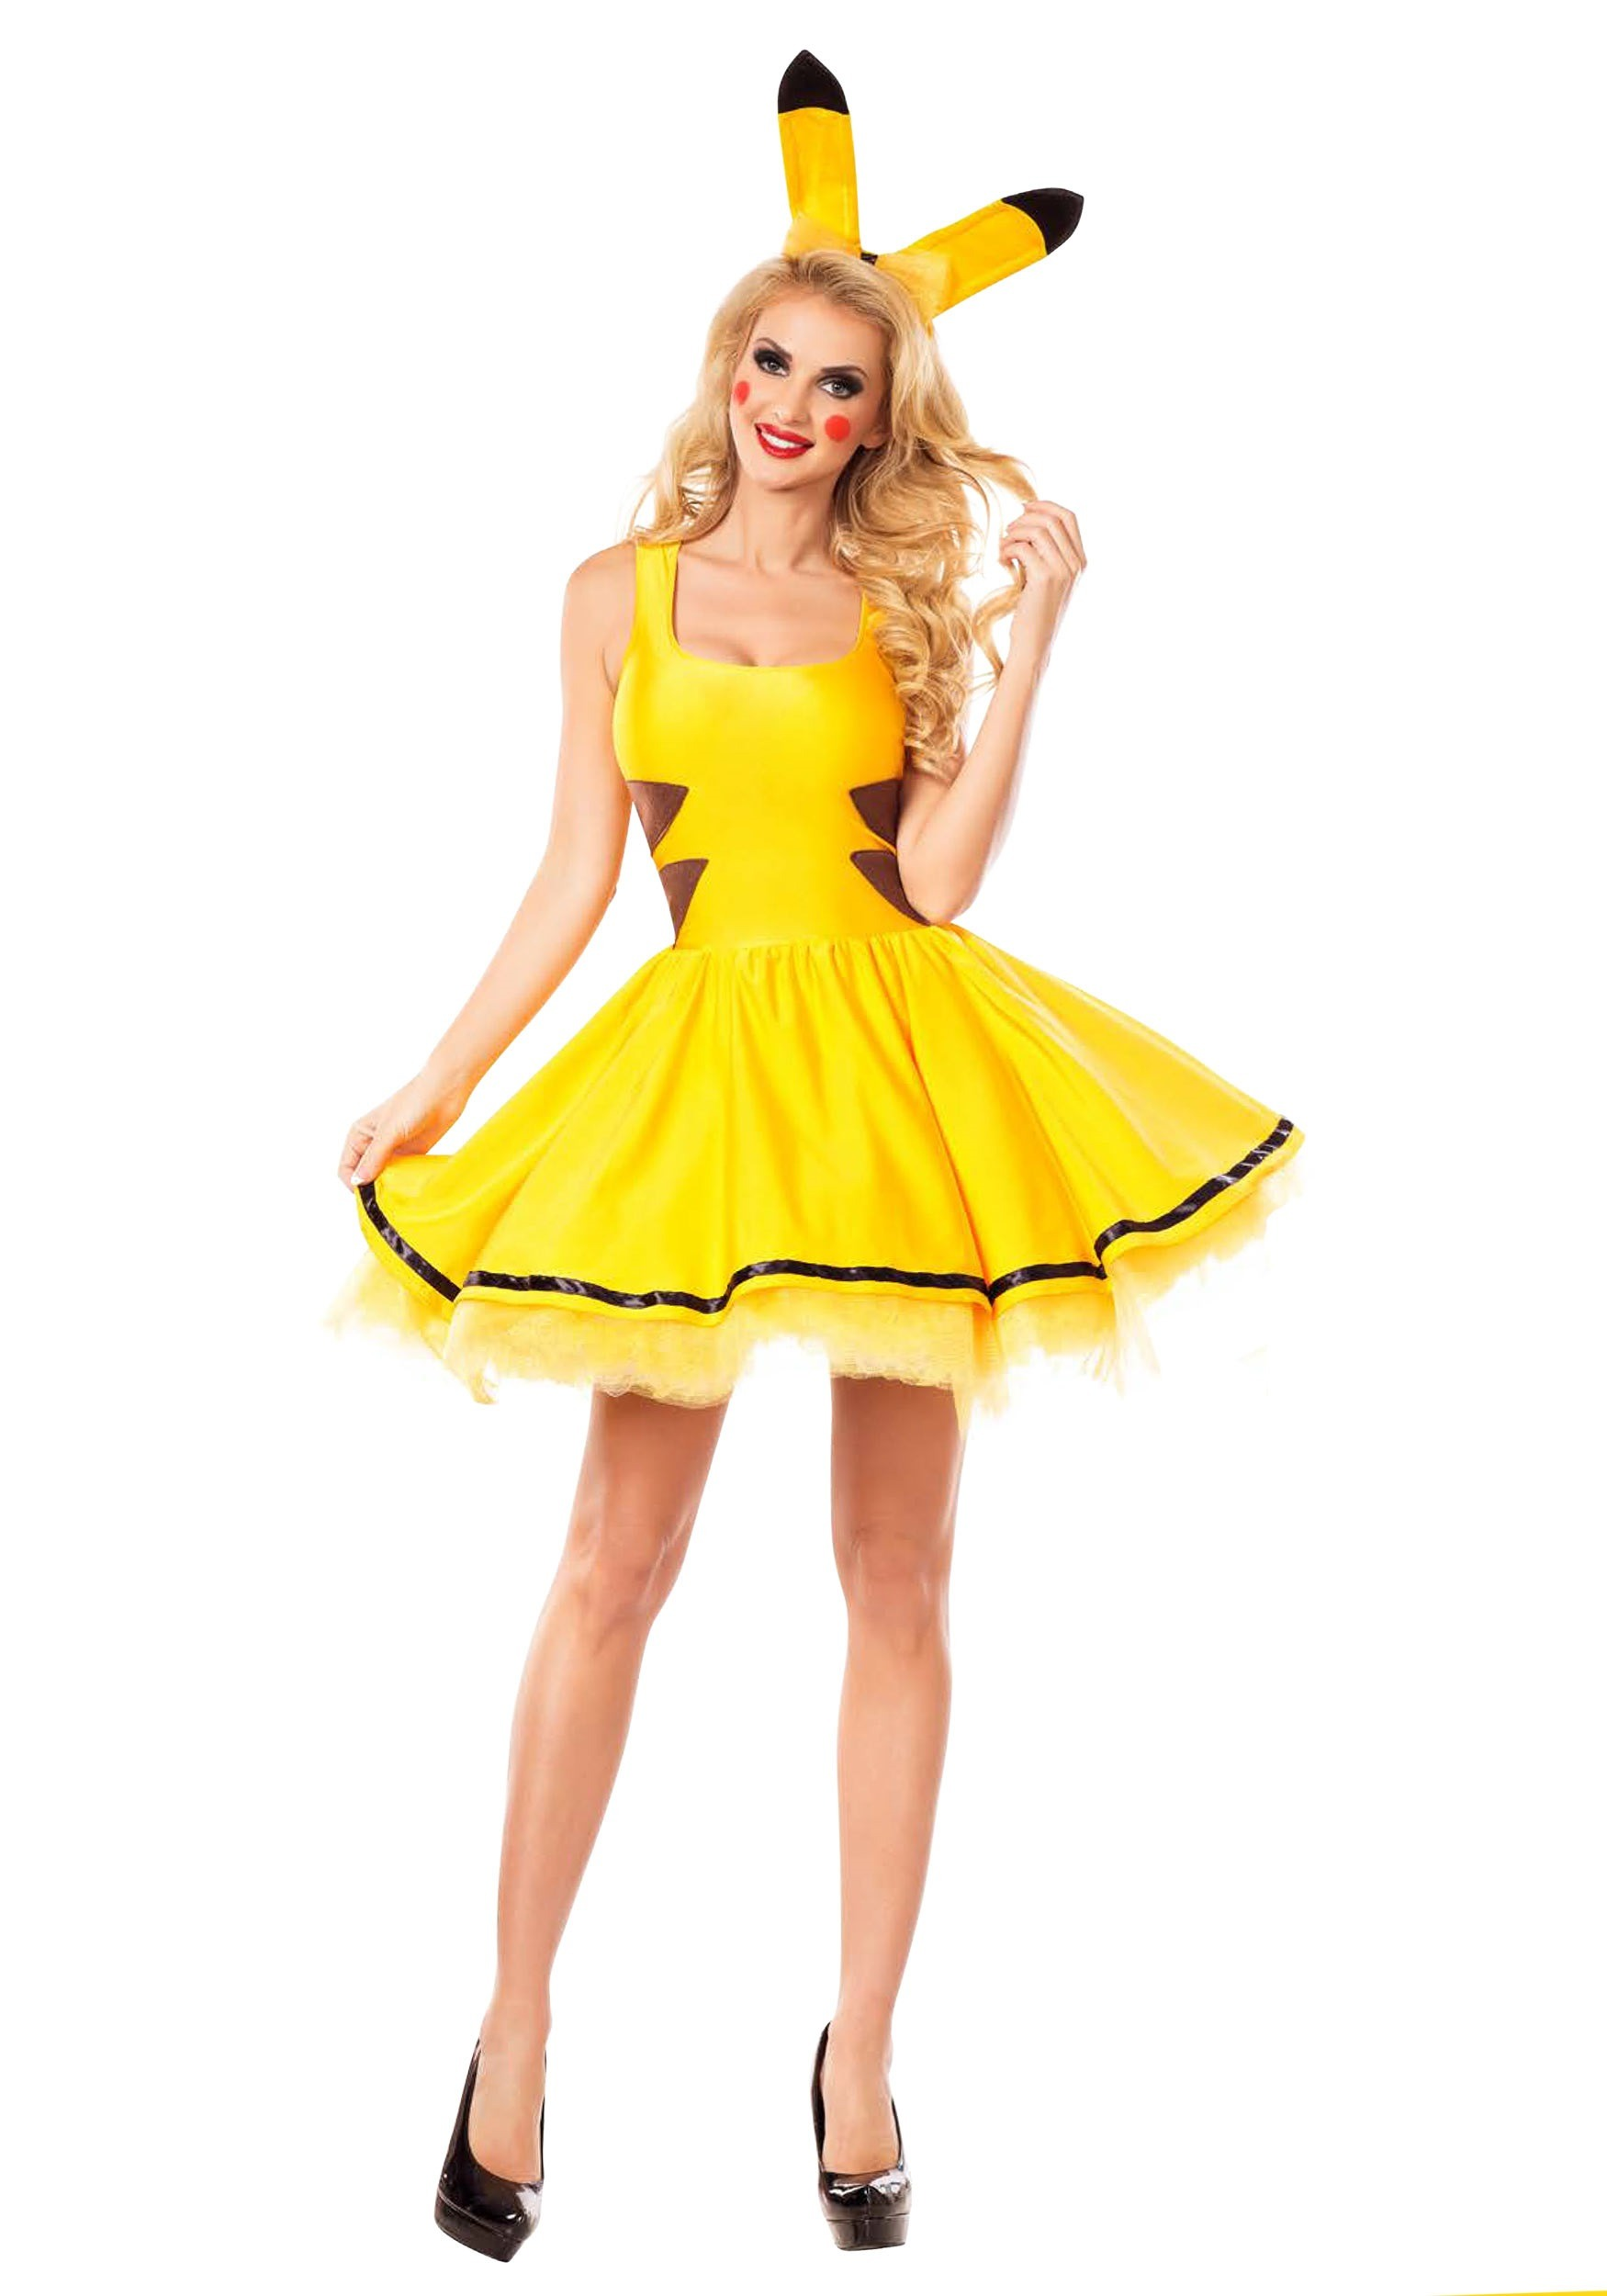 INOpets.com Anything for Pets Parents & Their Pets Women's Catch Me Honey Costume